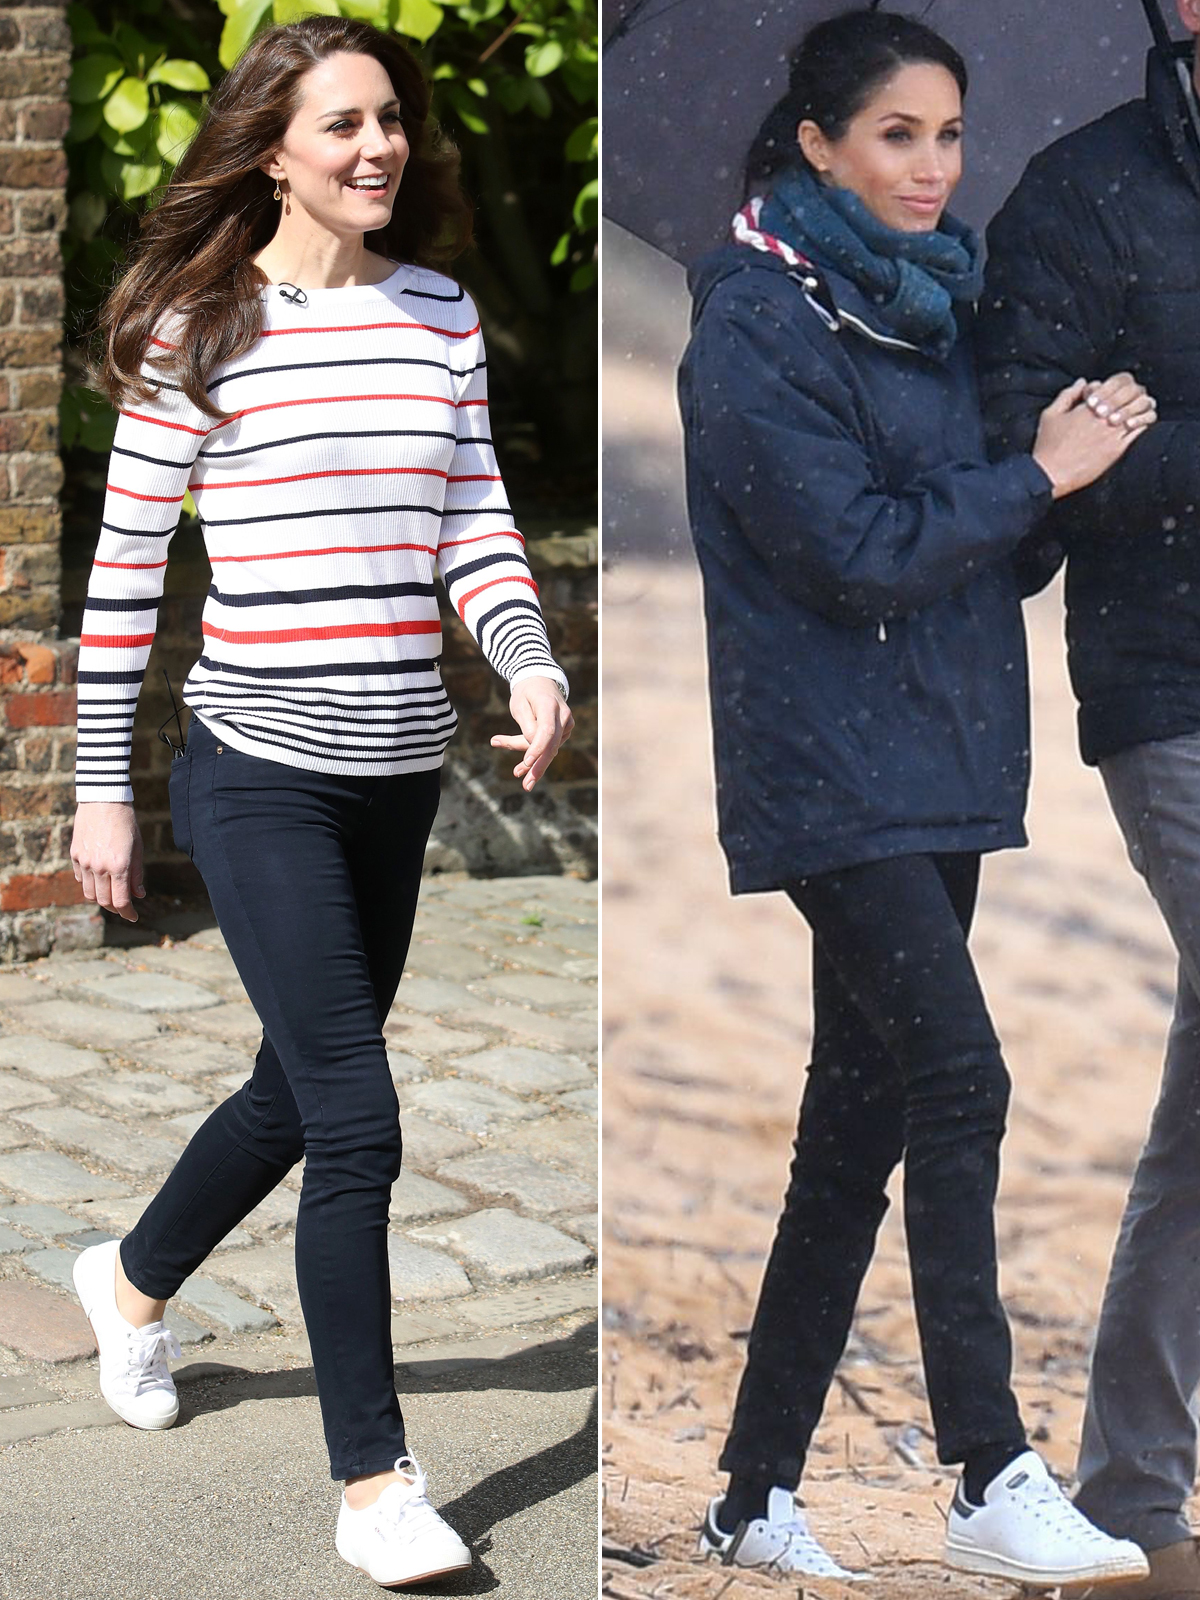 Meghan Markle and Kate Middleton's Favorite Flats and Sneakers – and Where to Buy Them